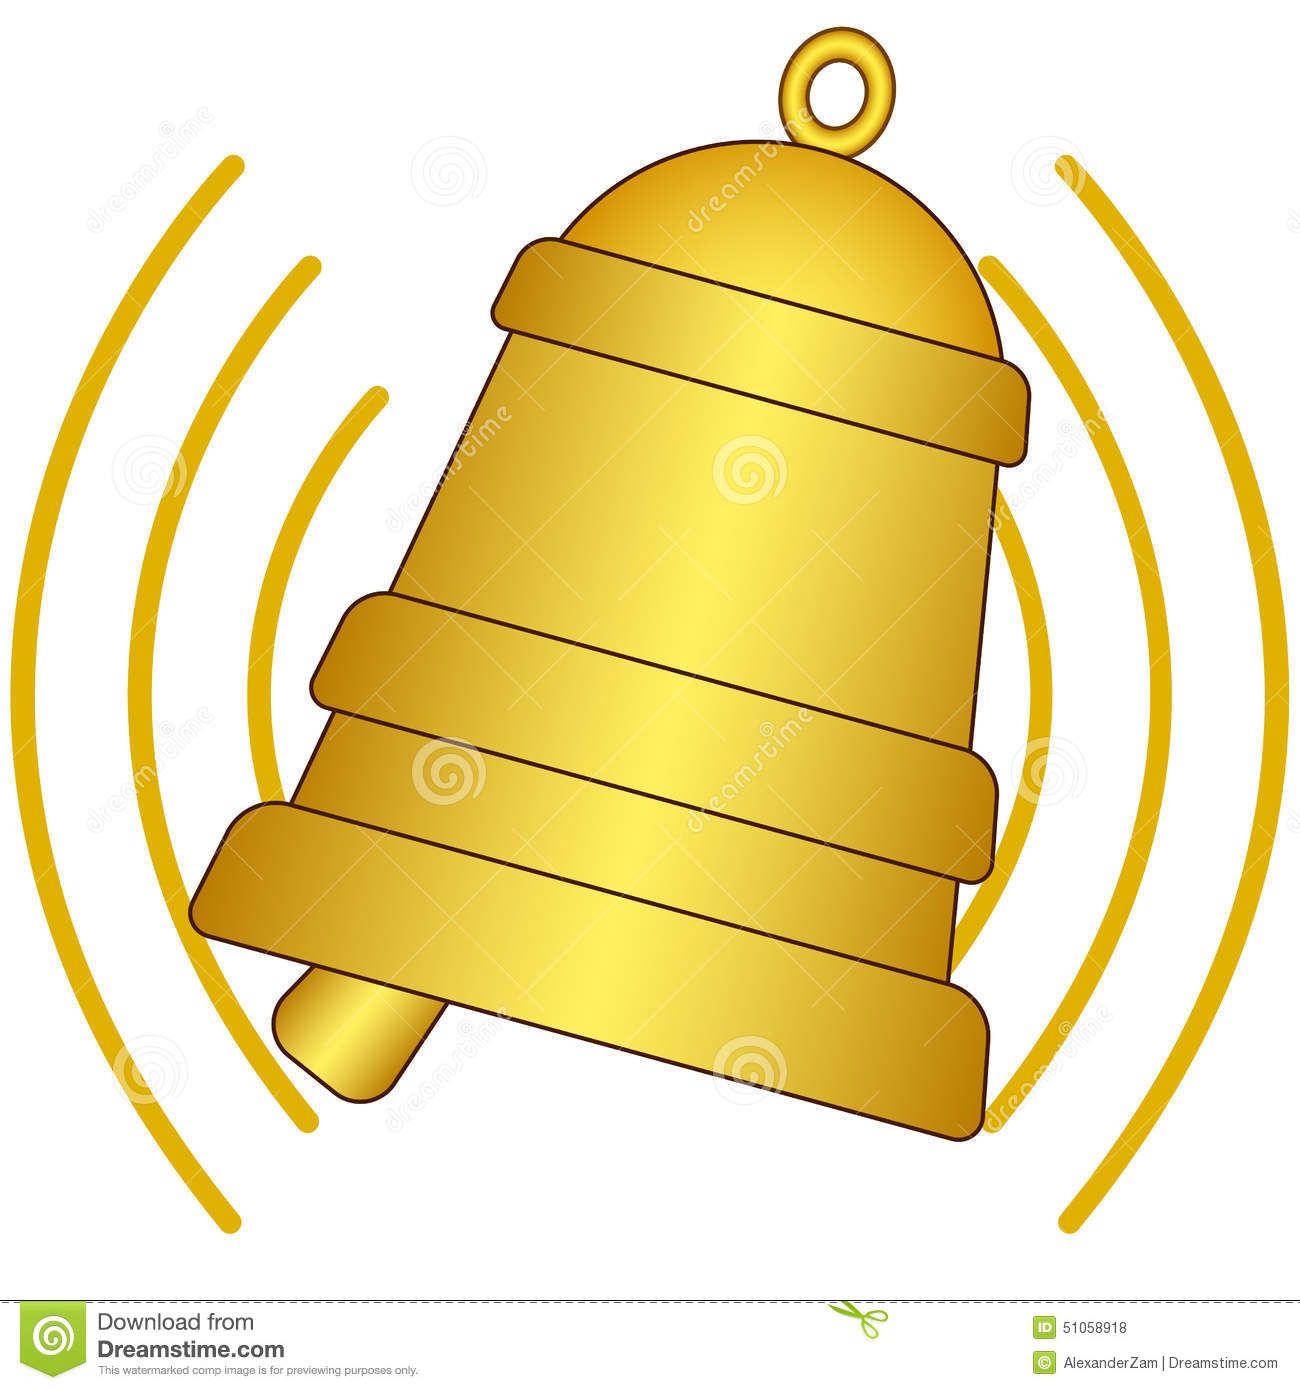 Clipart bell ringing.